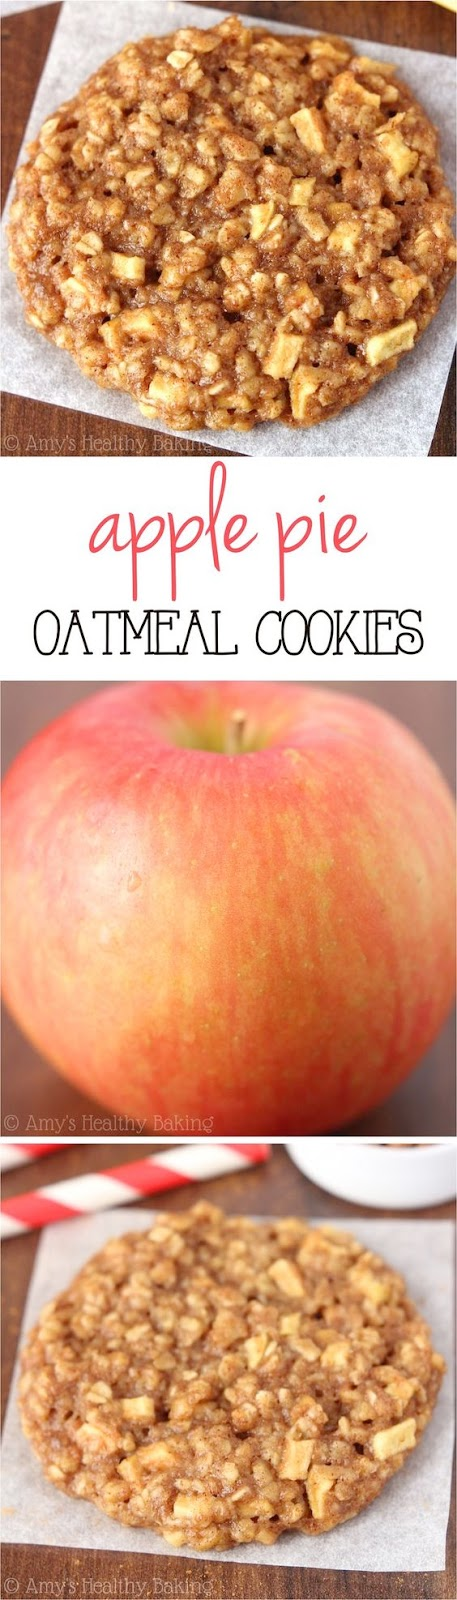 Apple Pie Oatmeal Cookies